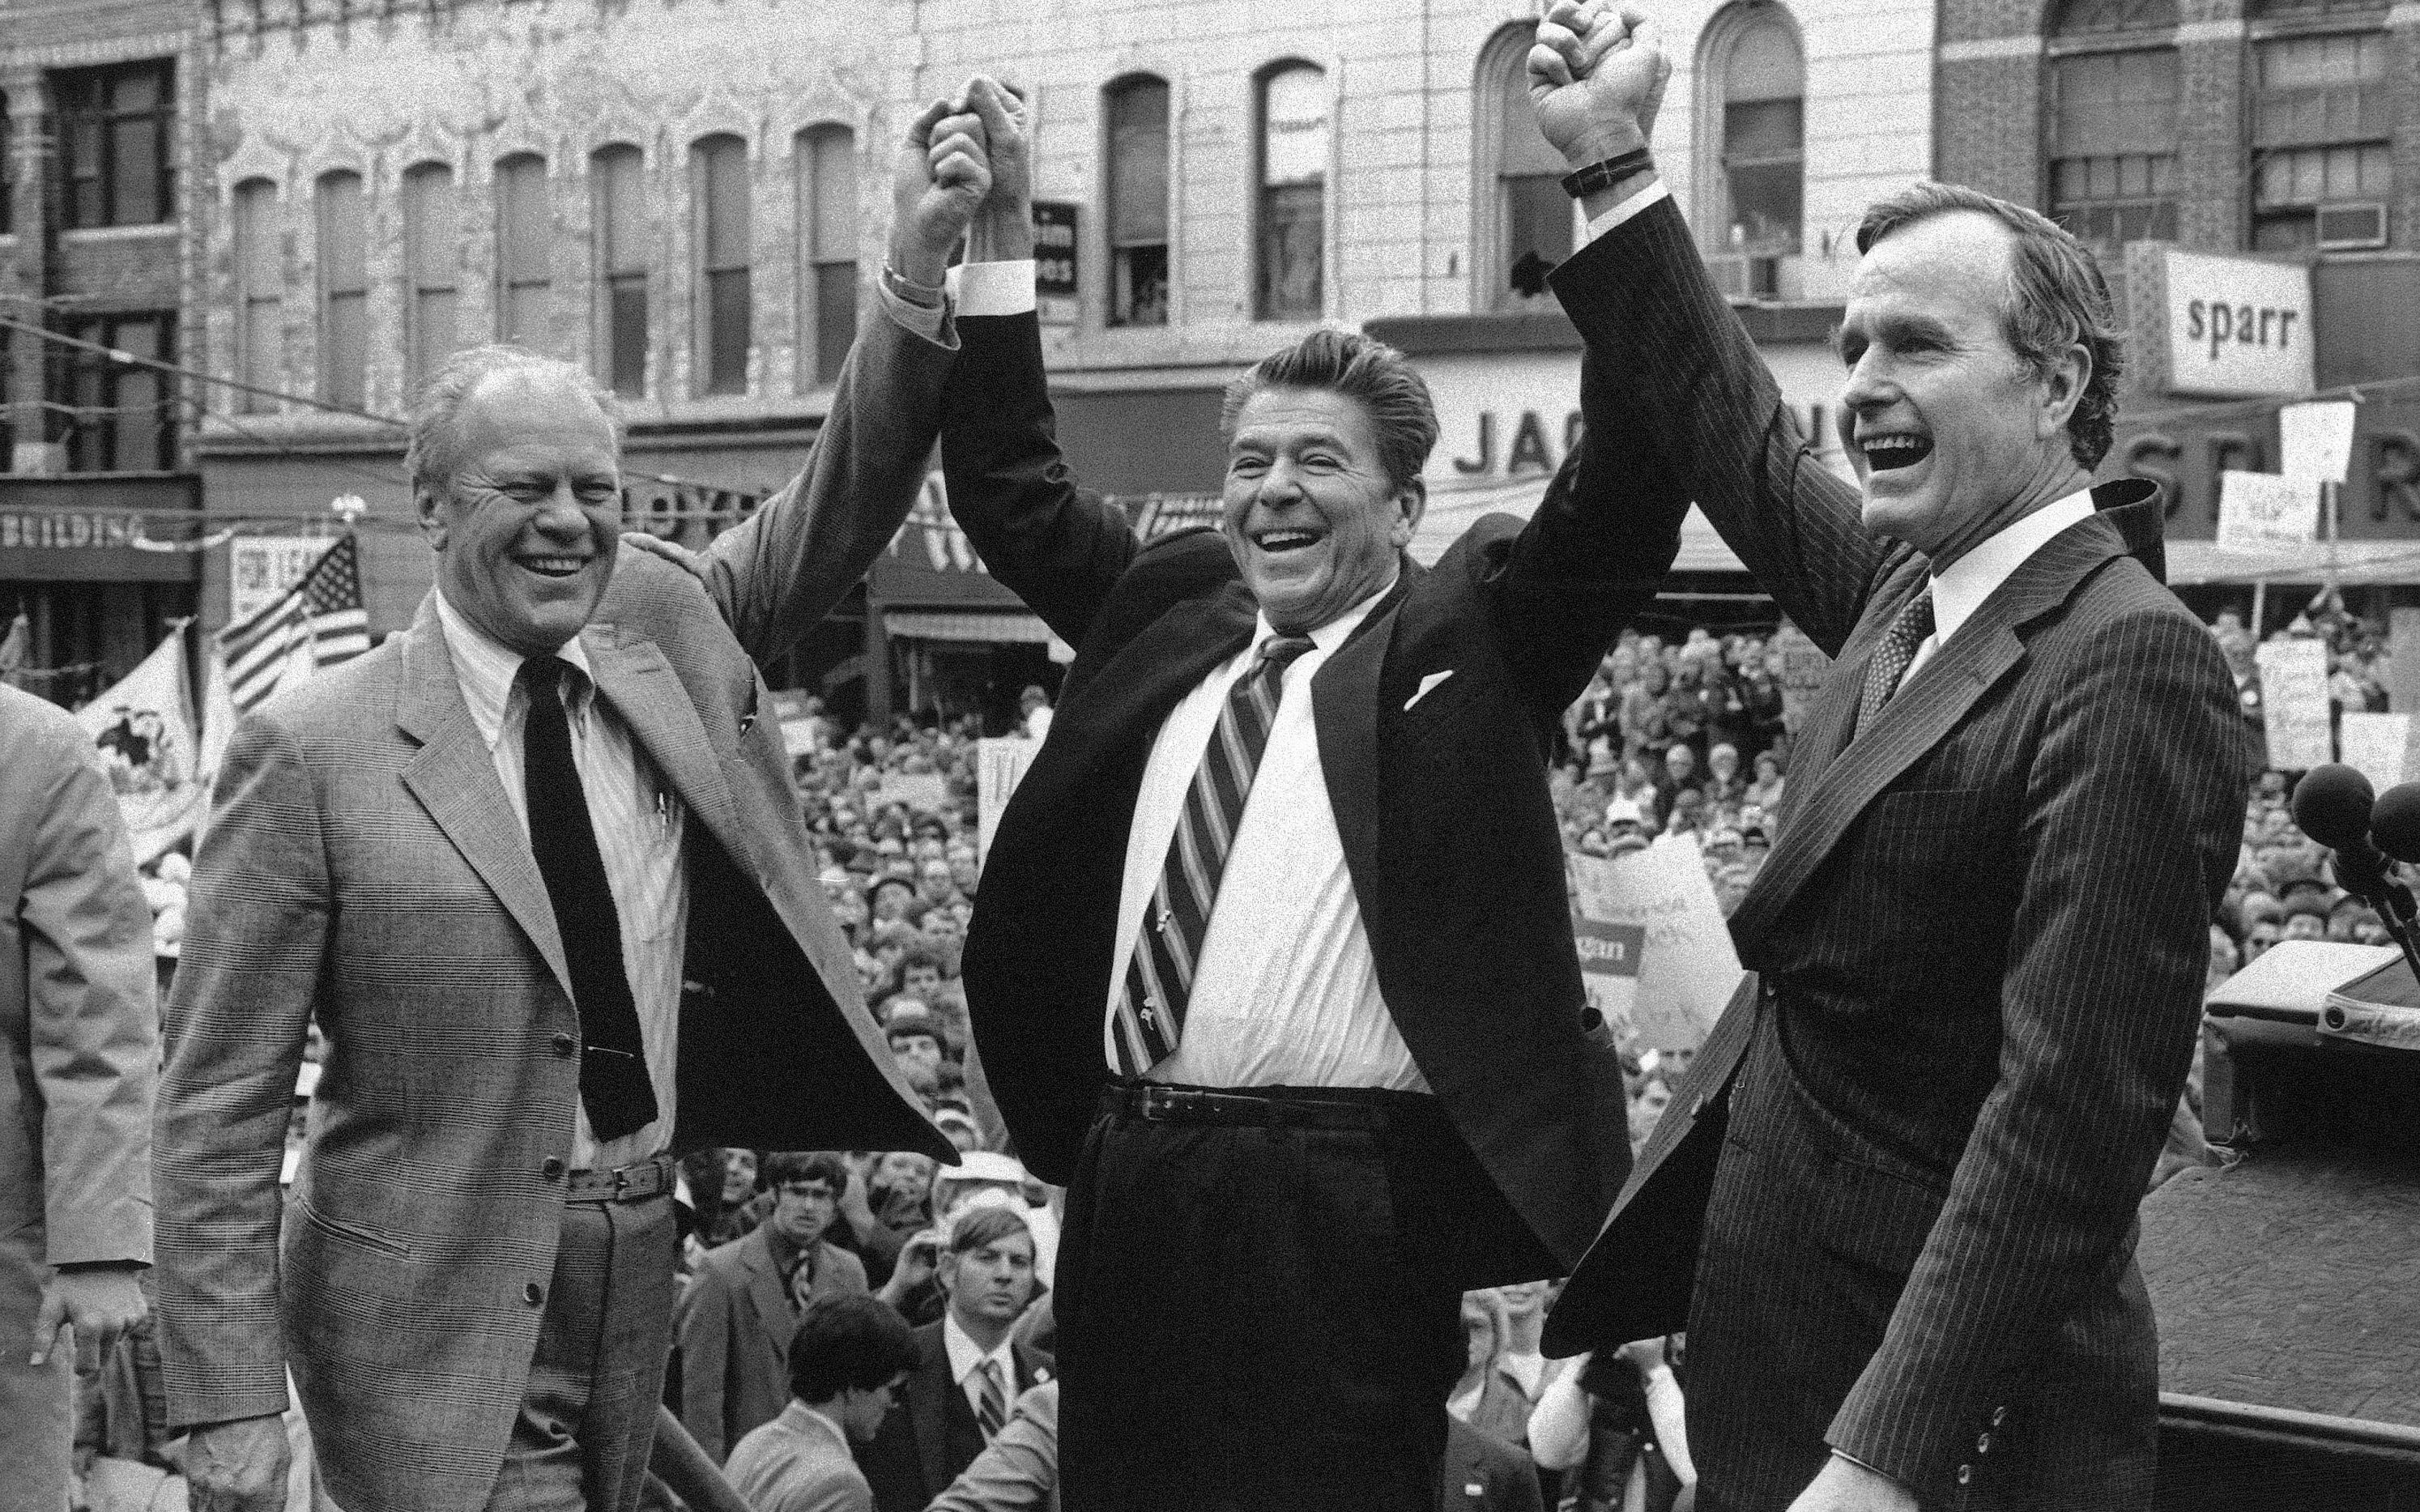 In this Nov. 3, 1980, photo, former President Gerald Ford lends his support to Republican presidential candidate Ronald Reagan and his running mate, George H.W. Bush in Peoria, Ill. (AP Photo, File)